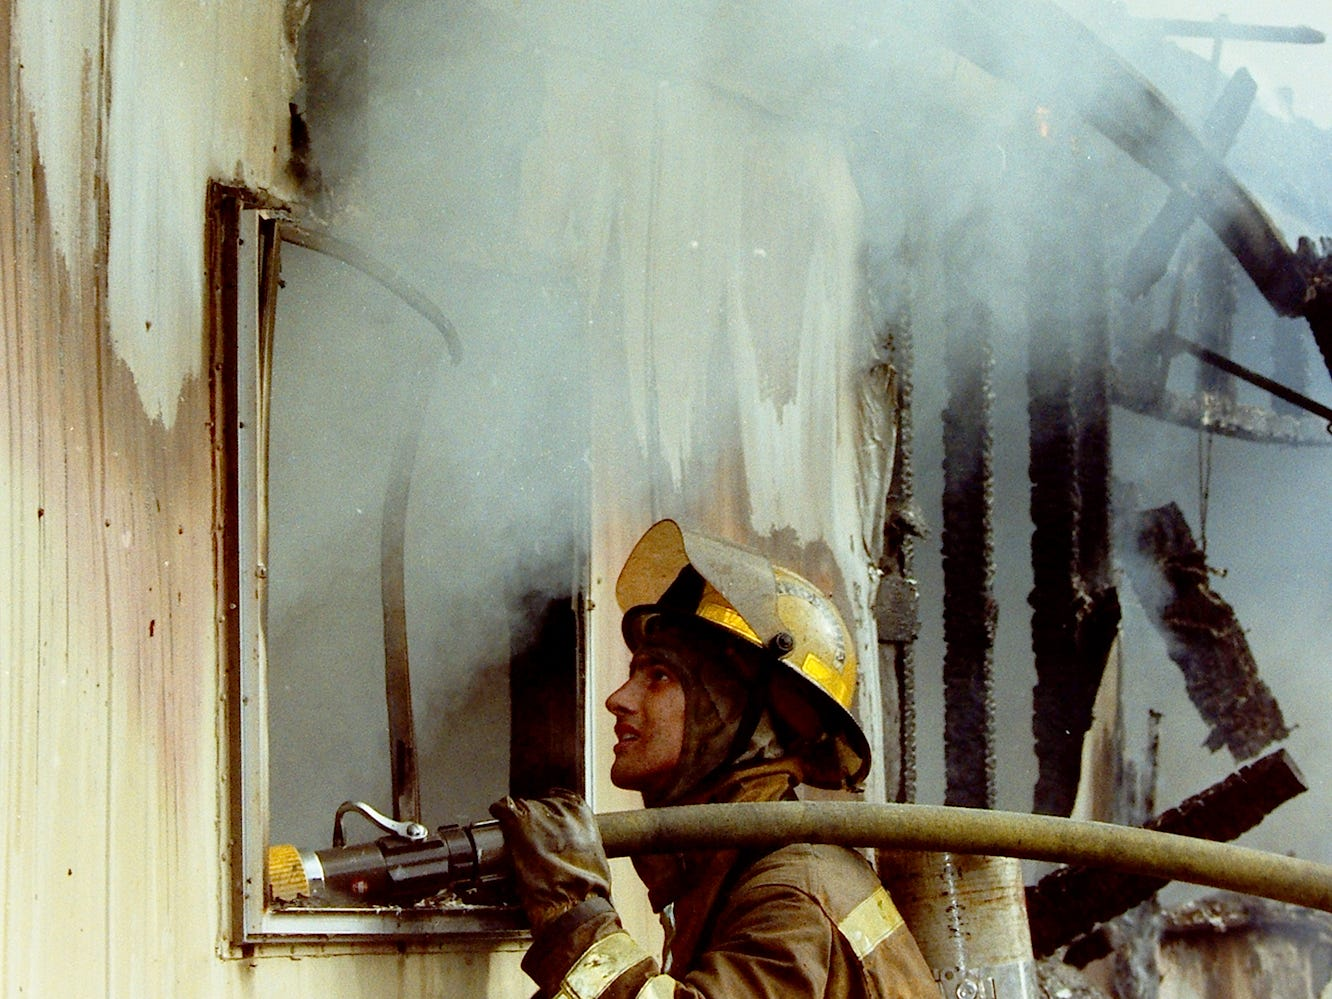 11/08/92Mobile Home Fire